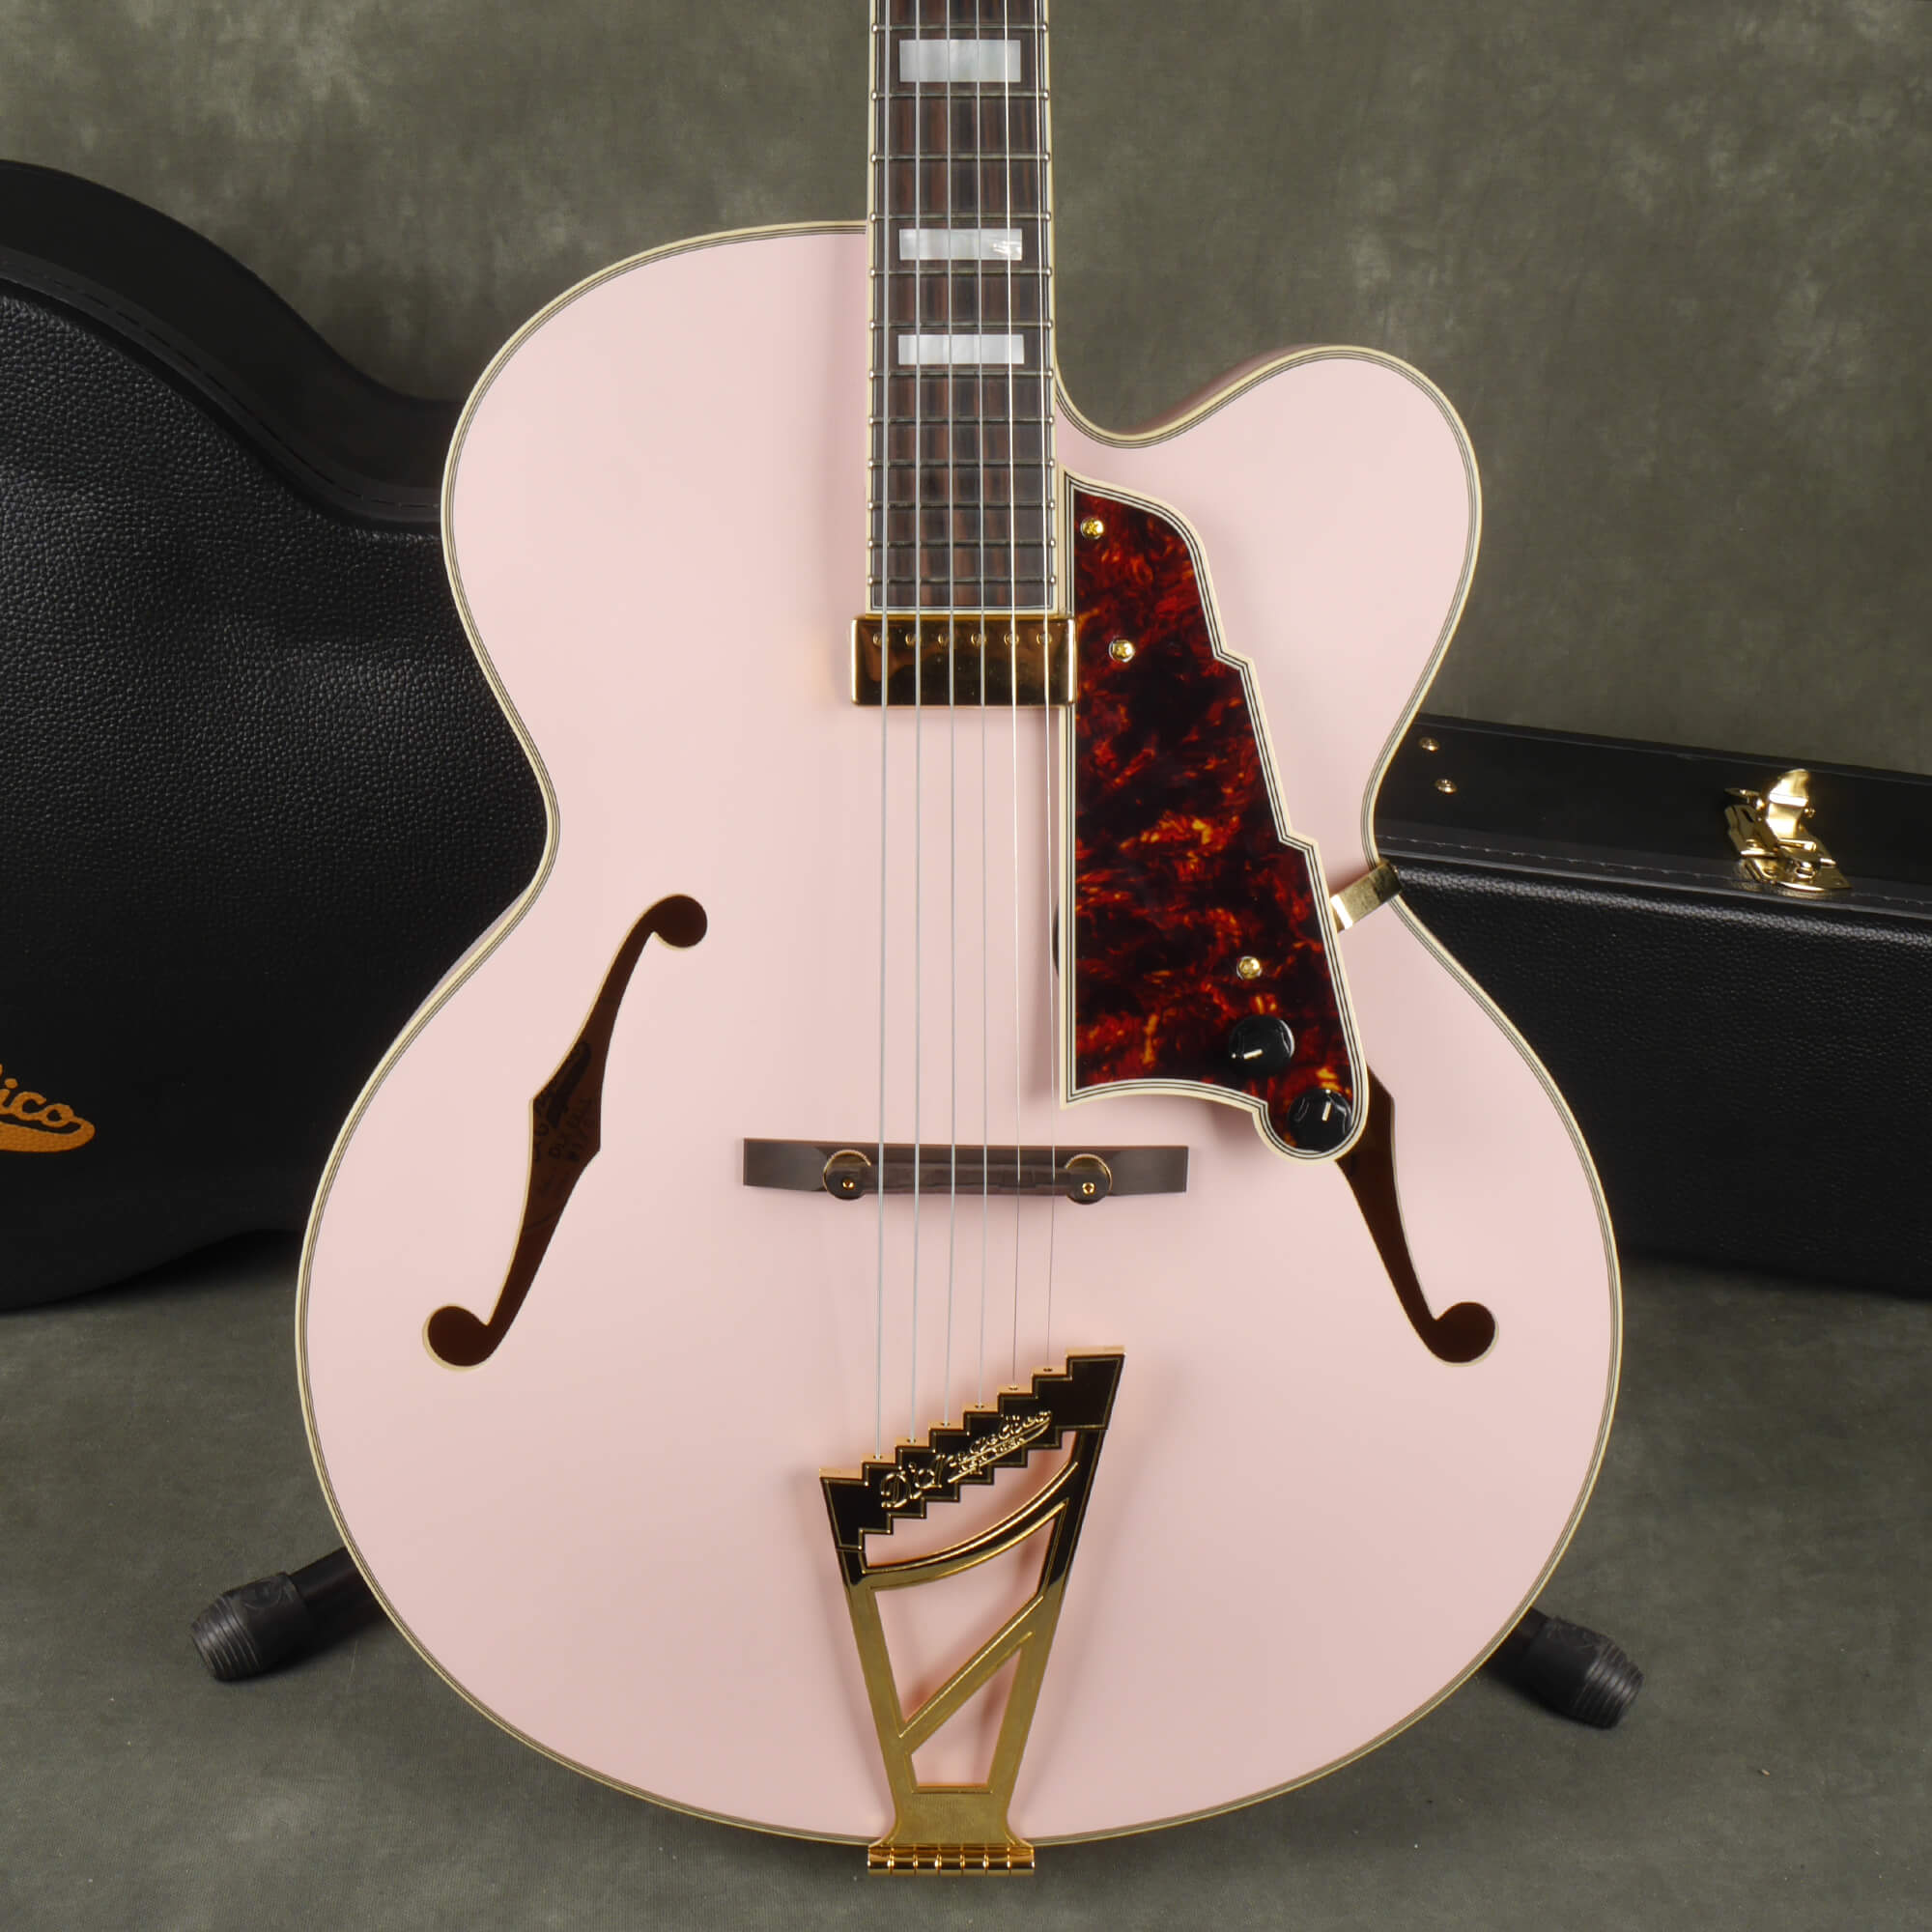 D'Angelico Deluxe EXL-1 Electric Guitar - Pink w/Hard Case - 2nd Hand